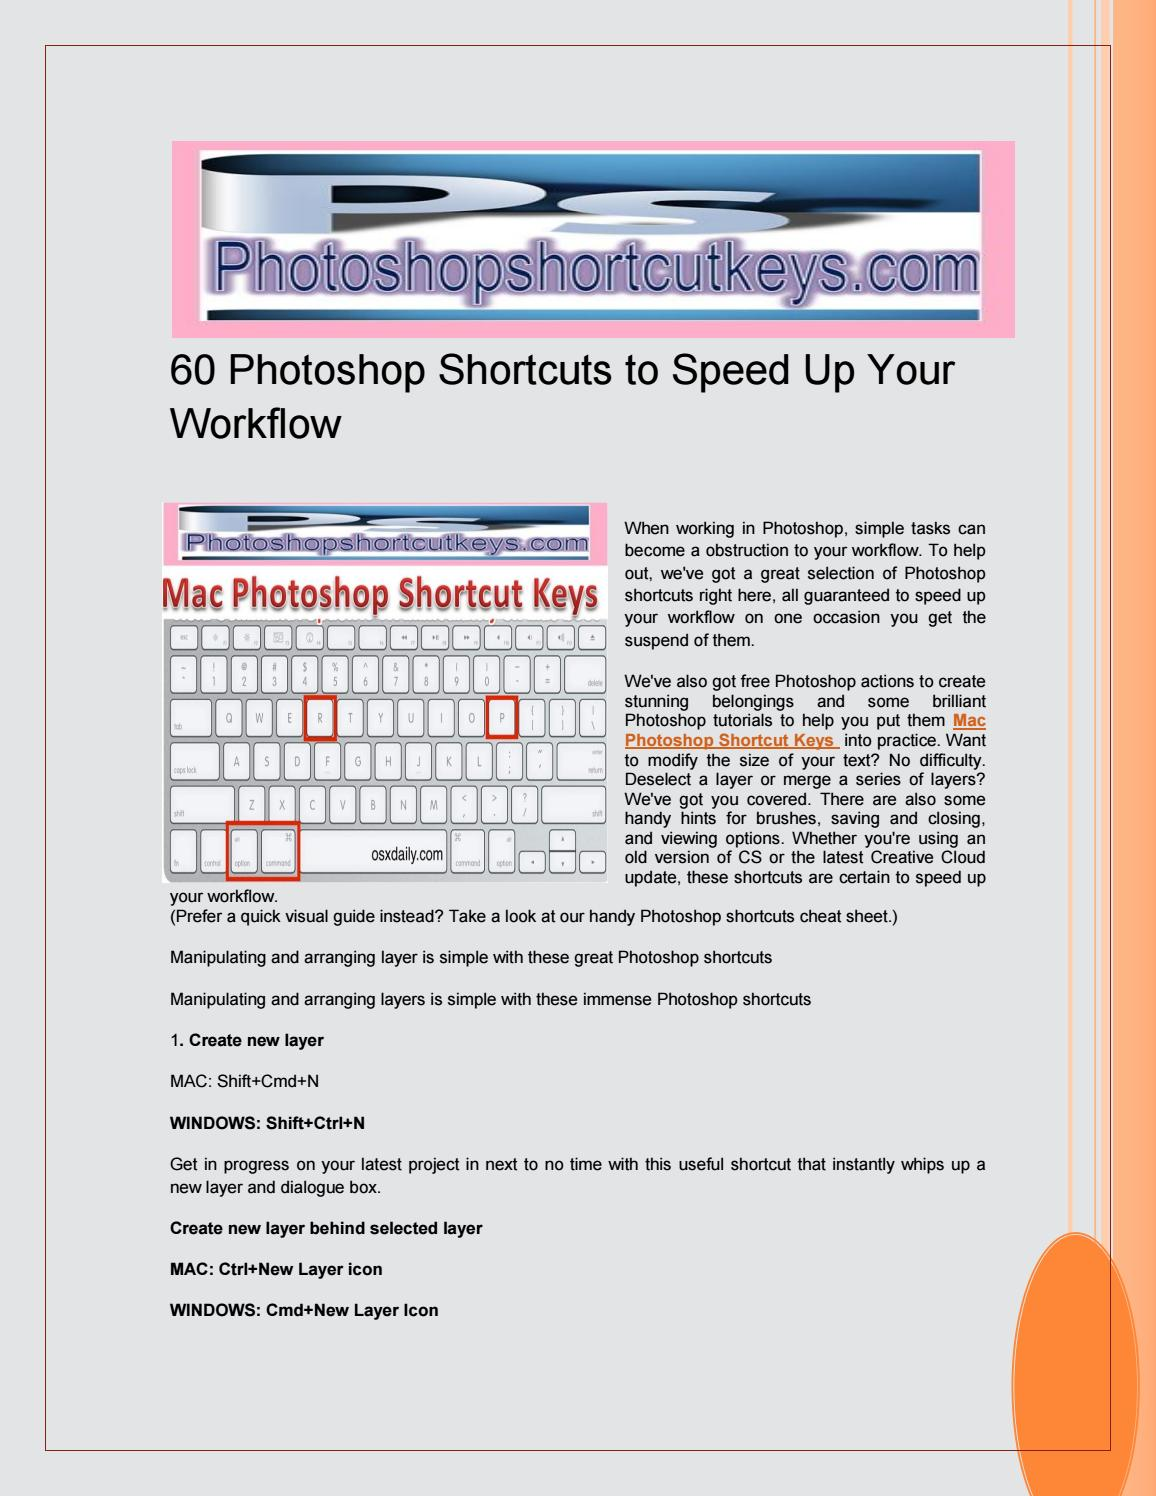 60 Photoshop Shortcuts to Speed Up Your Workflow by